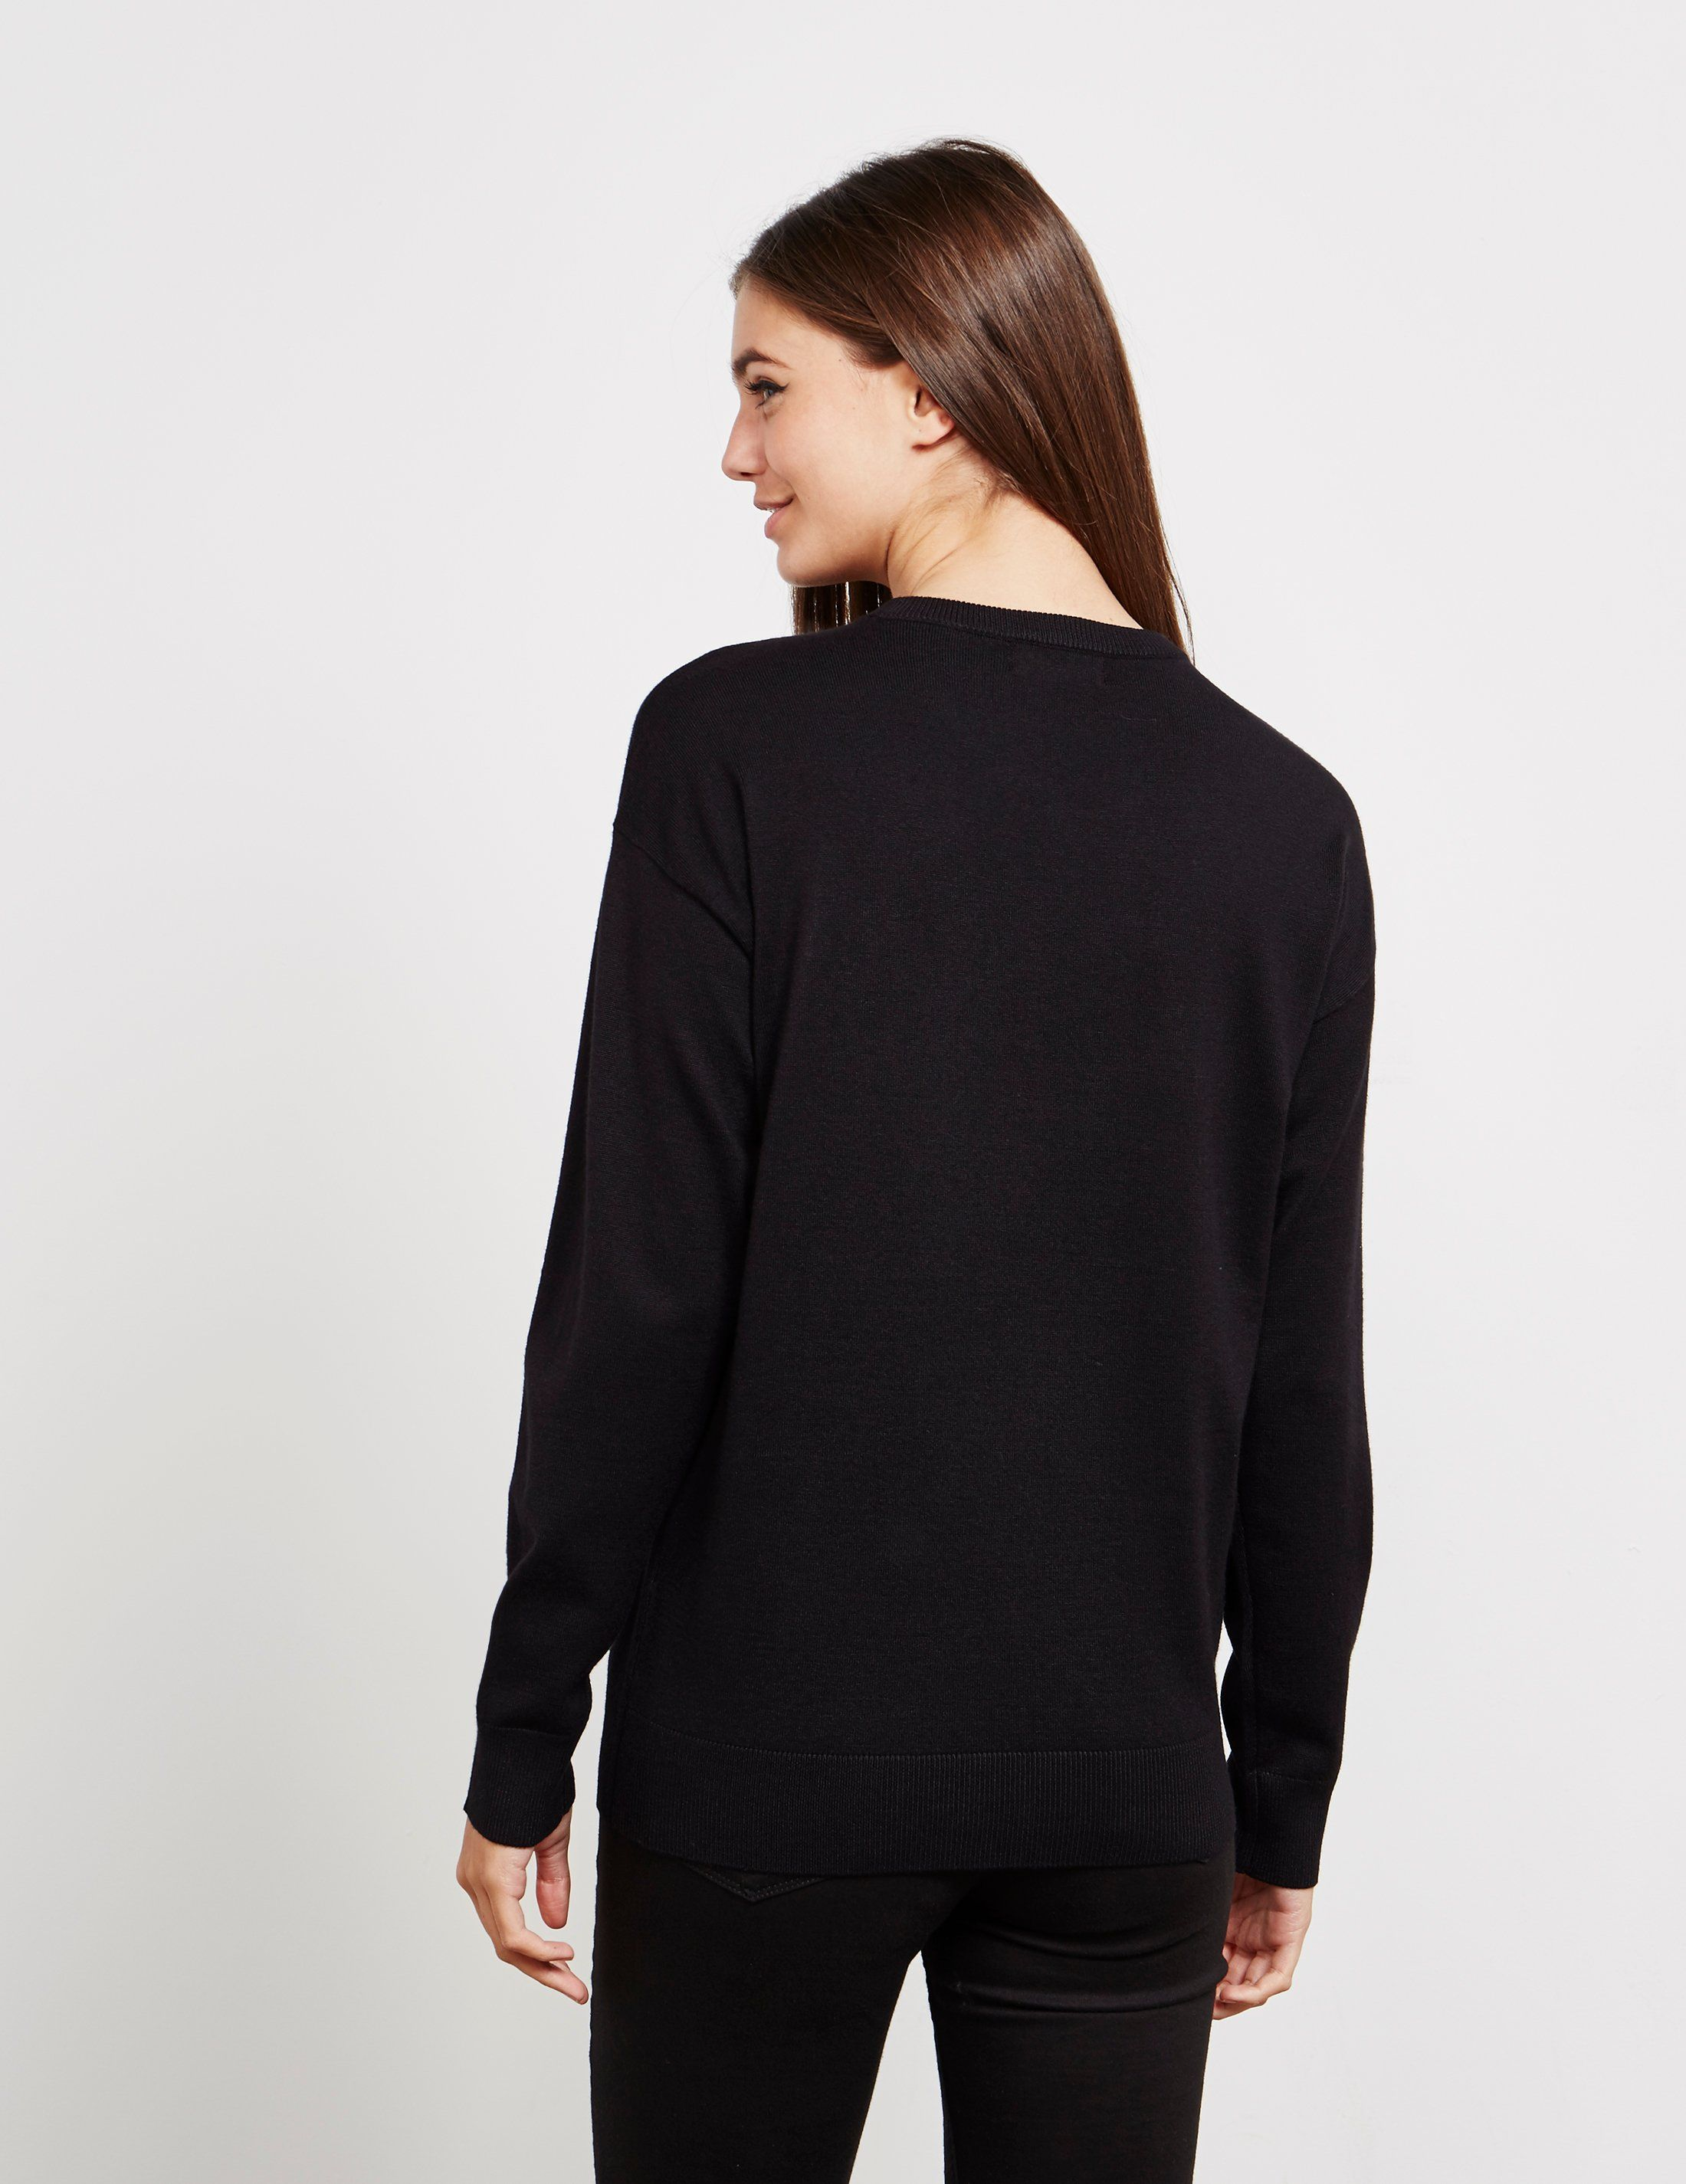 DKNY Heatset Long Sleeve Jumper